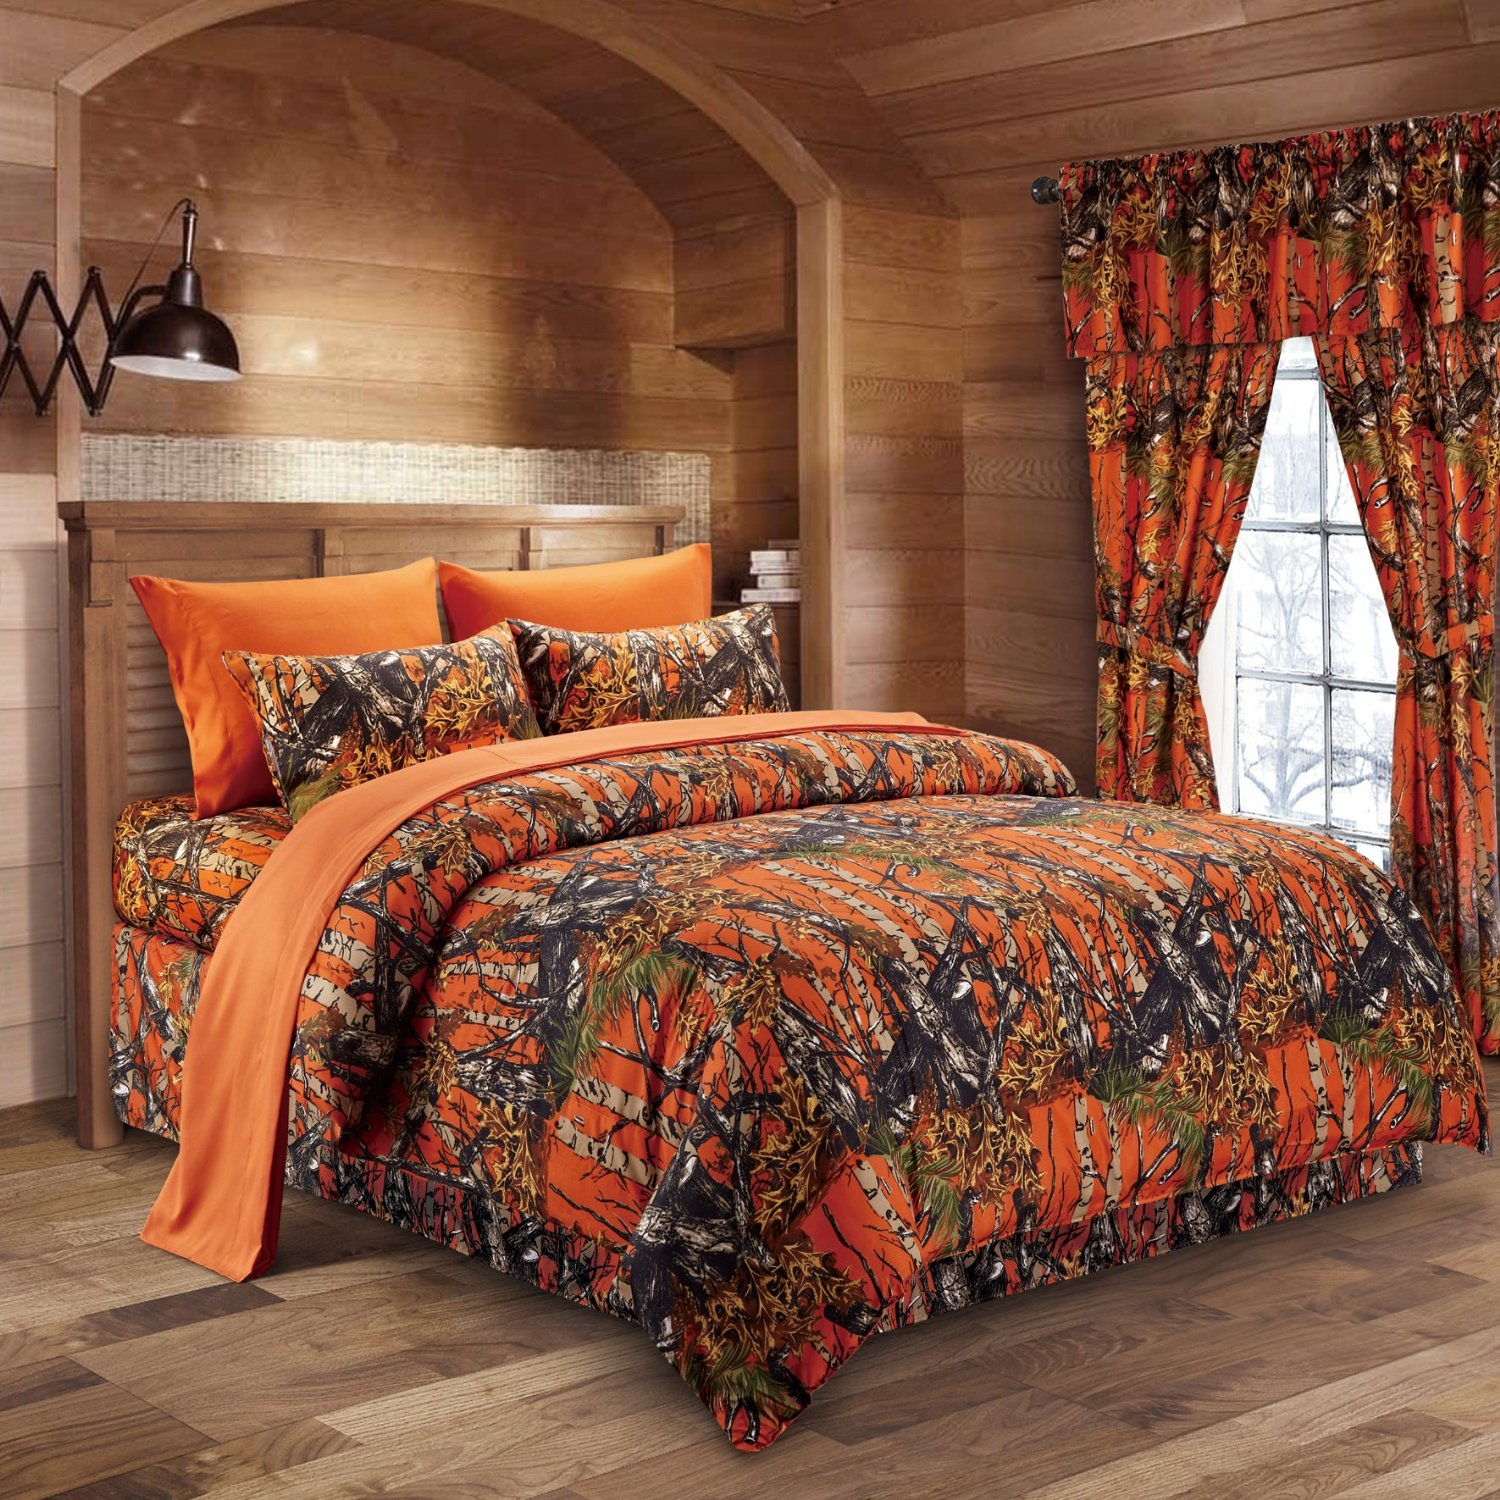 Regal Comfort 8pc Queen Size Woods Orange Camouflage Premium Comforter, Sheet, Pillowcases, and Bed Skirt Set Camo Bedding Set For Hunters Cabin or Rustic Lodge Teens Boys and Girls